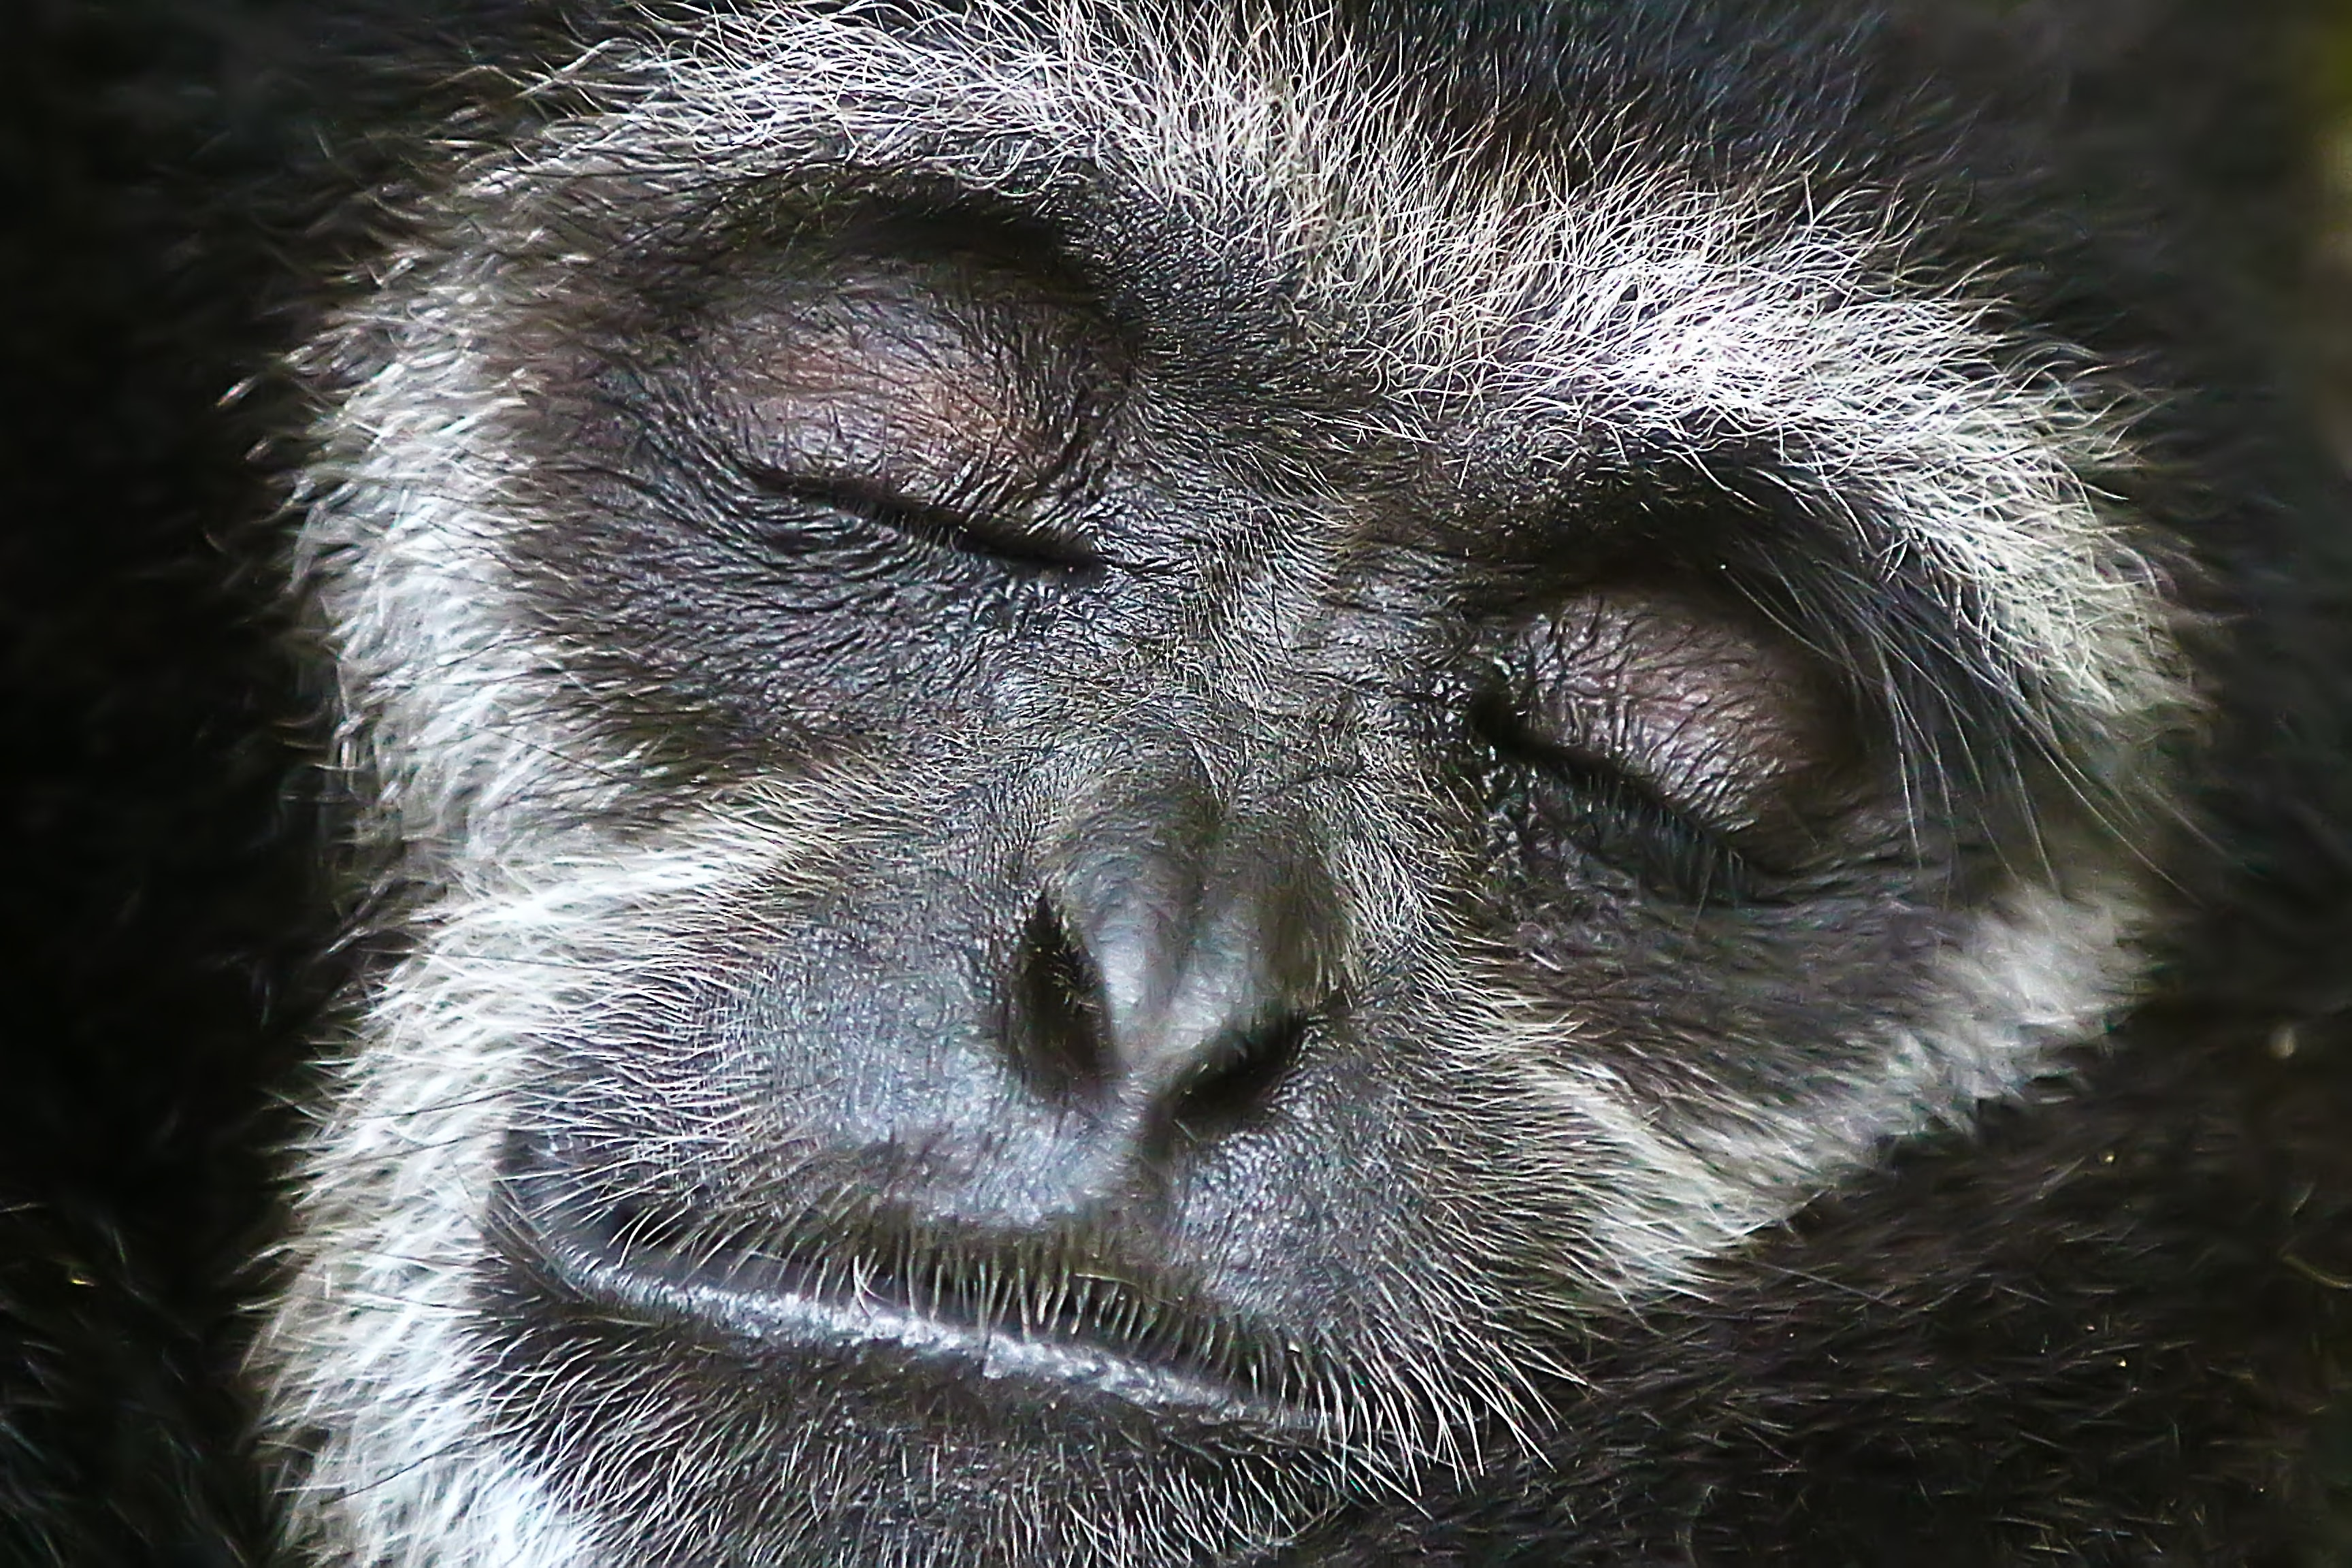 close shot of gray monkey face